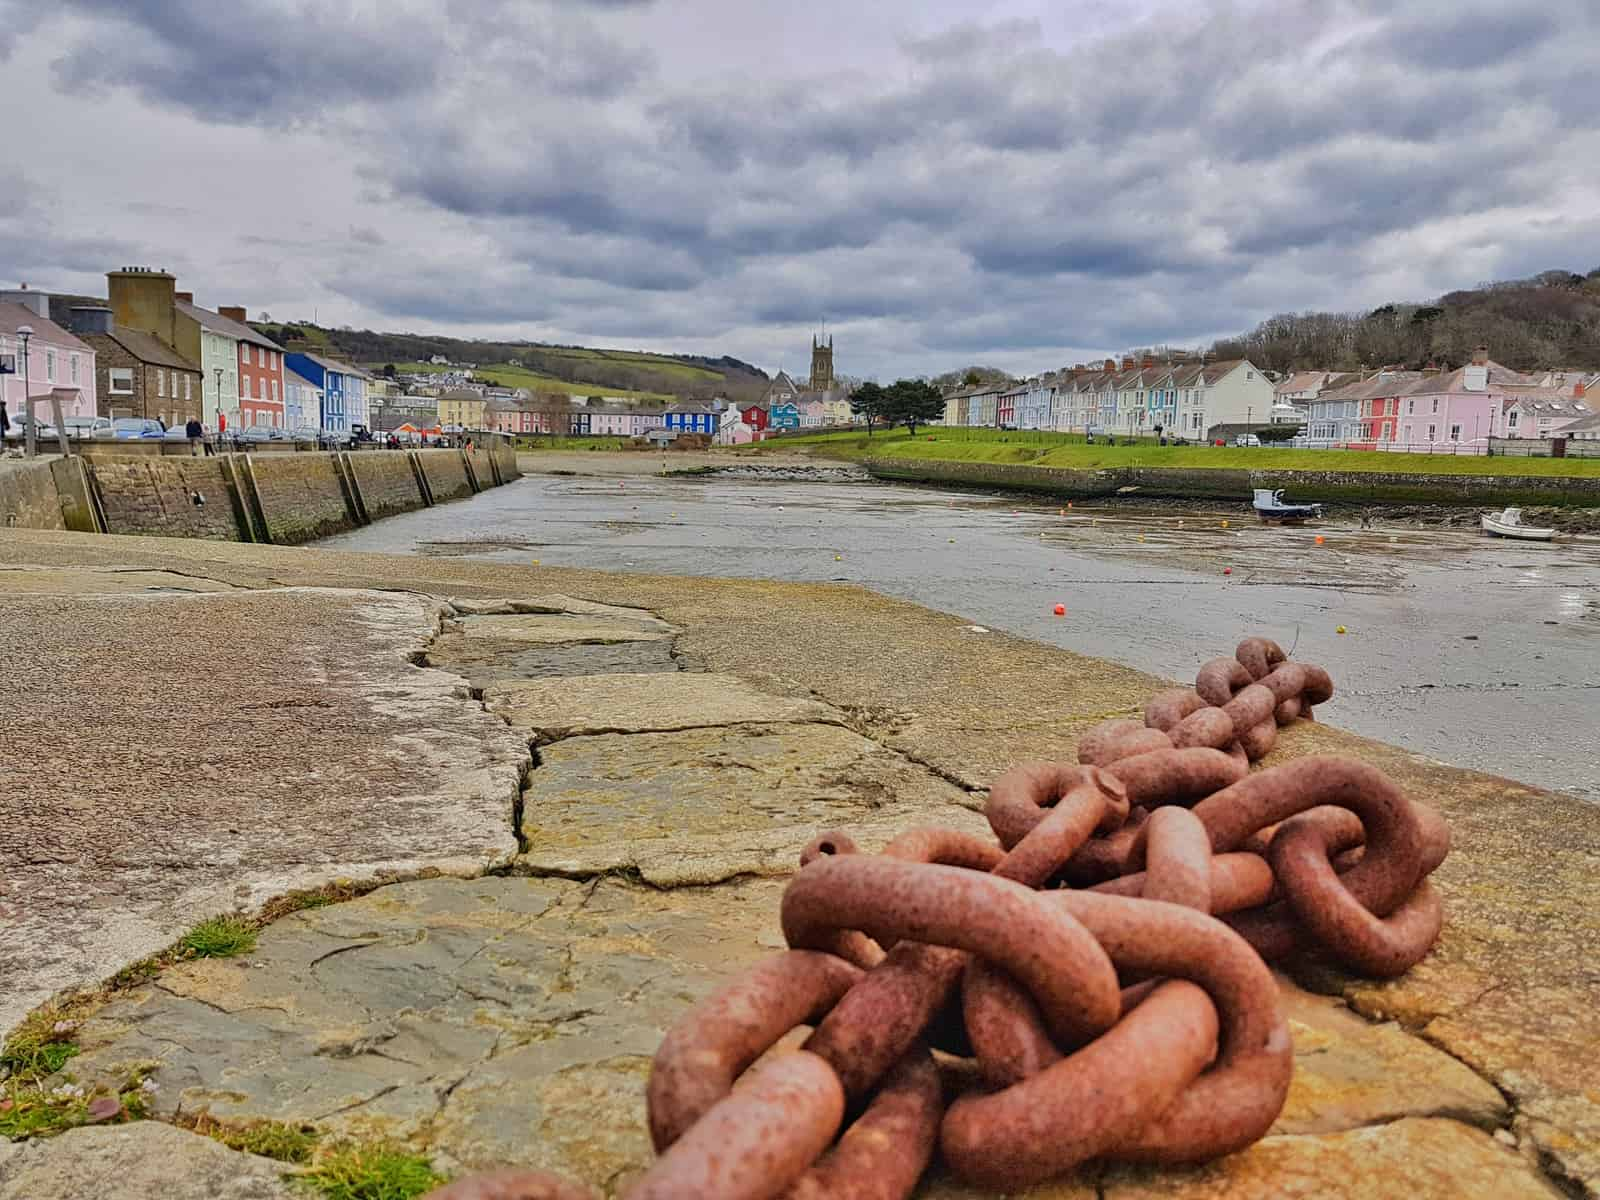 View across Aberaeron harbour at low tide with colourful houses in background and anchor chain in foreground